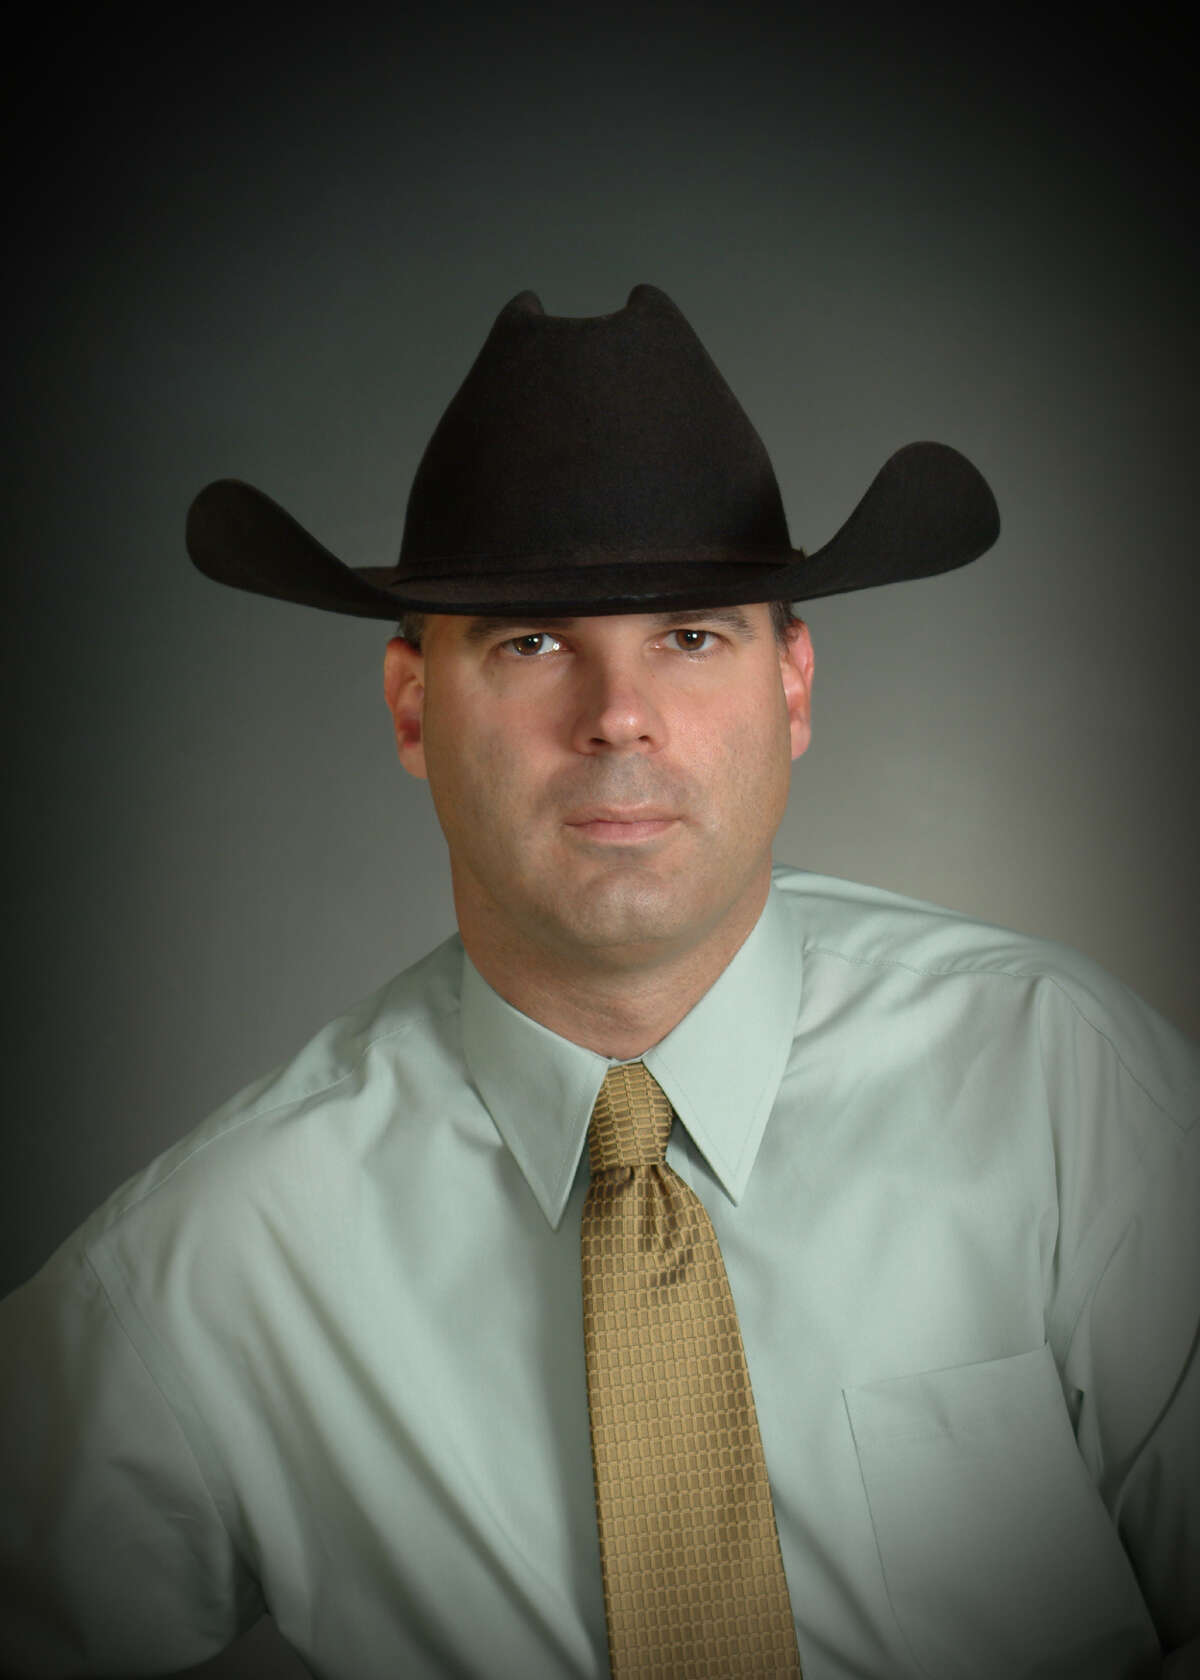 Brian Brosen is a cowboy-hat-wearing real estate agent, dad to three and one of the most interesting local people on social media. Click through to find out 20 things you didn't know about him.